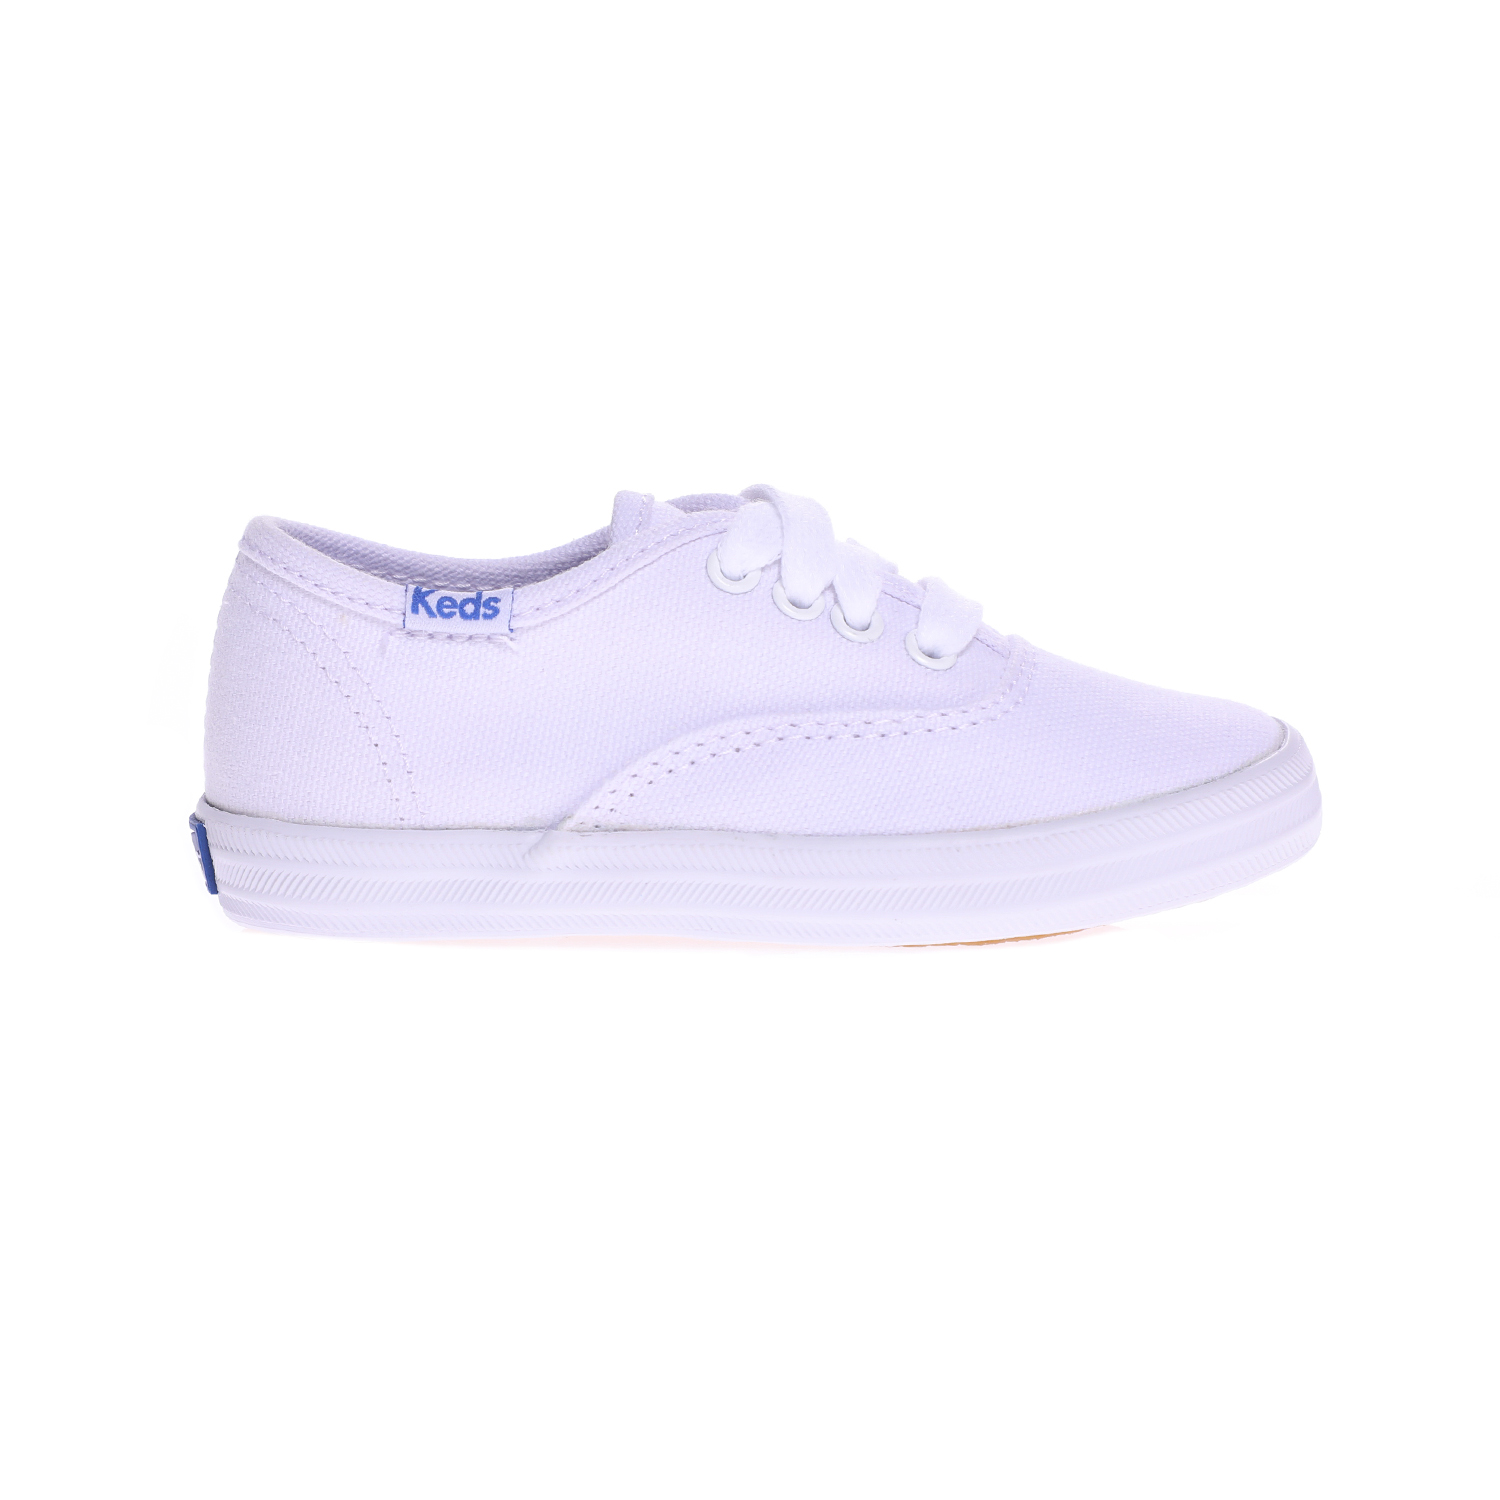 KEDS – Βρεφικά παπούτσια KEDS λευκά